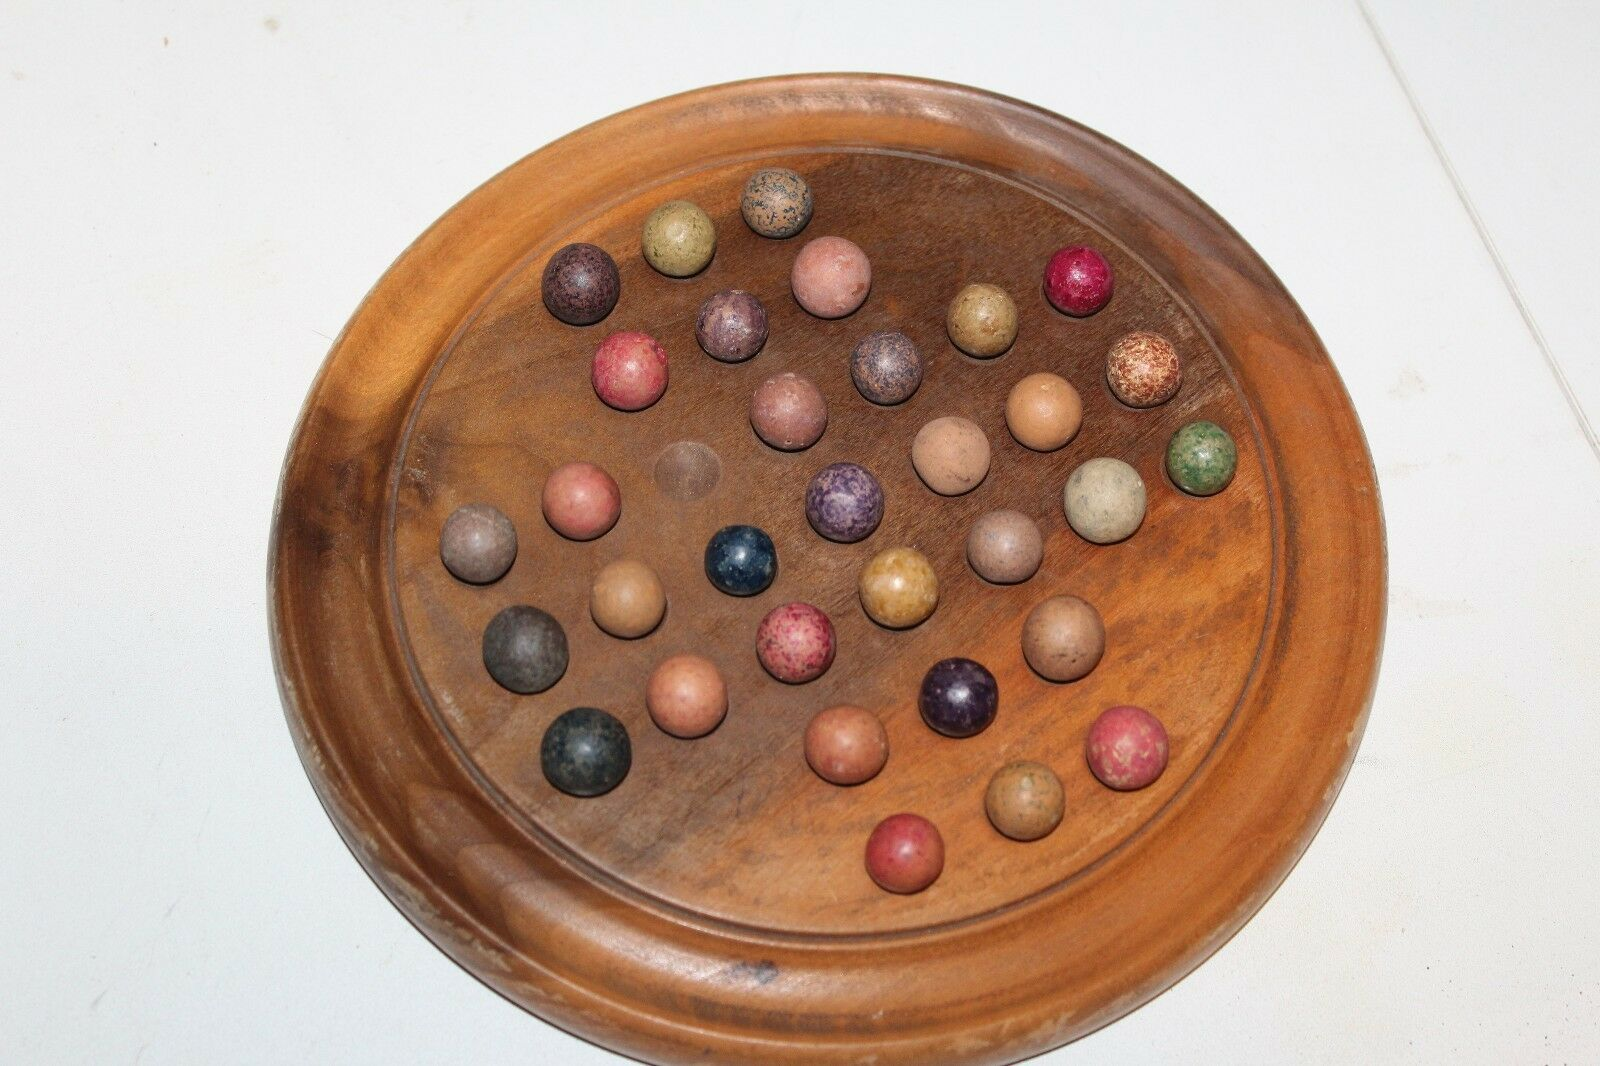 VINTAGE WOODEN 19th CENTURY MARBLE GAME BOARD AND CLAY MARBLES